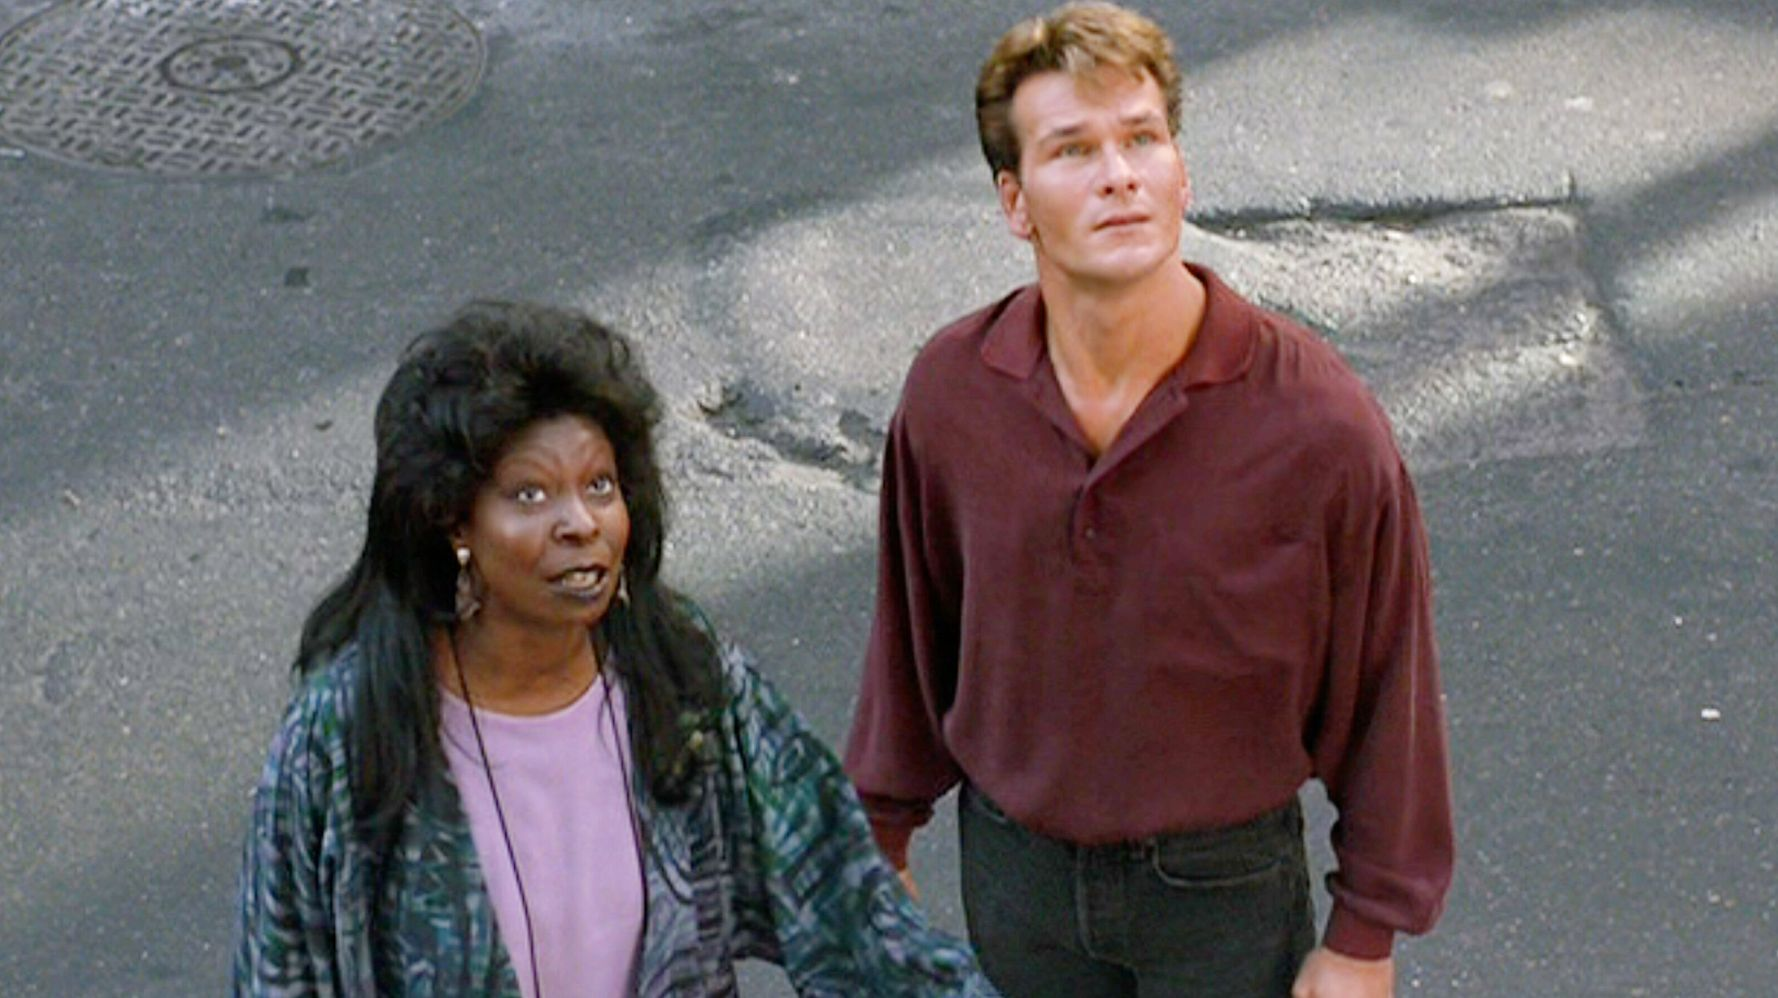 Whoopi Goldberg Reveals Patrick Swayze Fought For Her To Get Iconic 'Ghost' Role - HuffPost